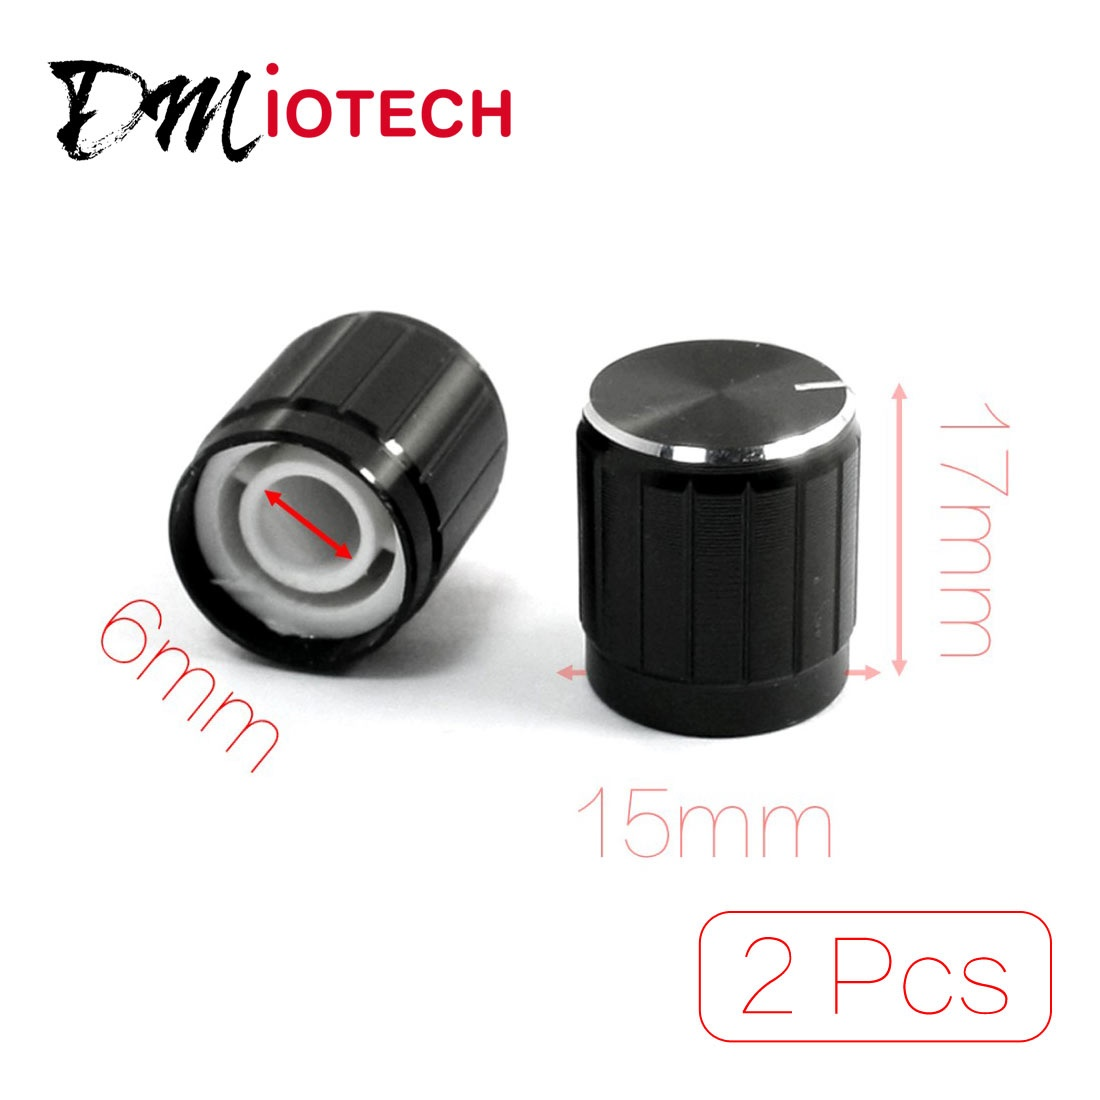 UXCELL 2Pcs Nonslip Ribbed Grip Potentiometer Rotary Knobs Caps 6Mm Dia. Hole Black Switch Accessories Electrical Equipment